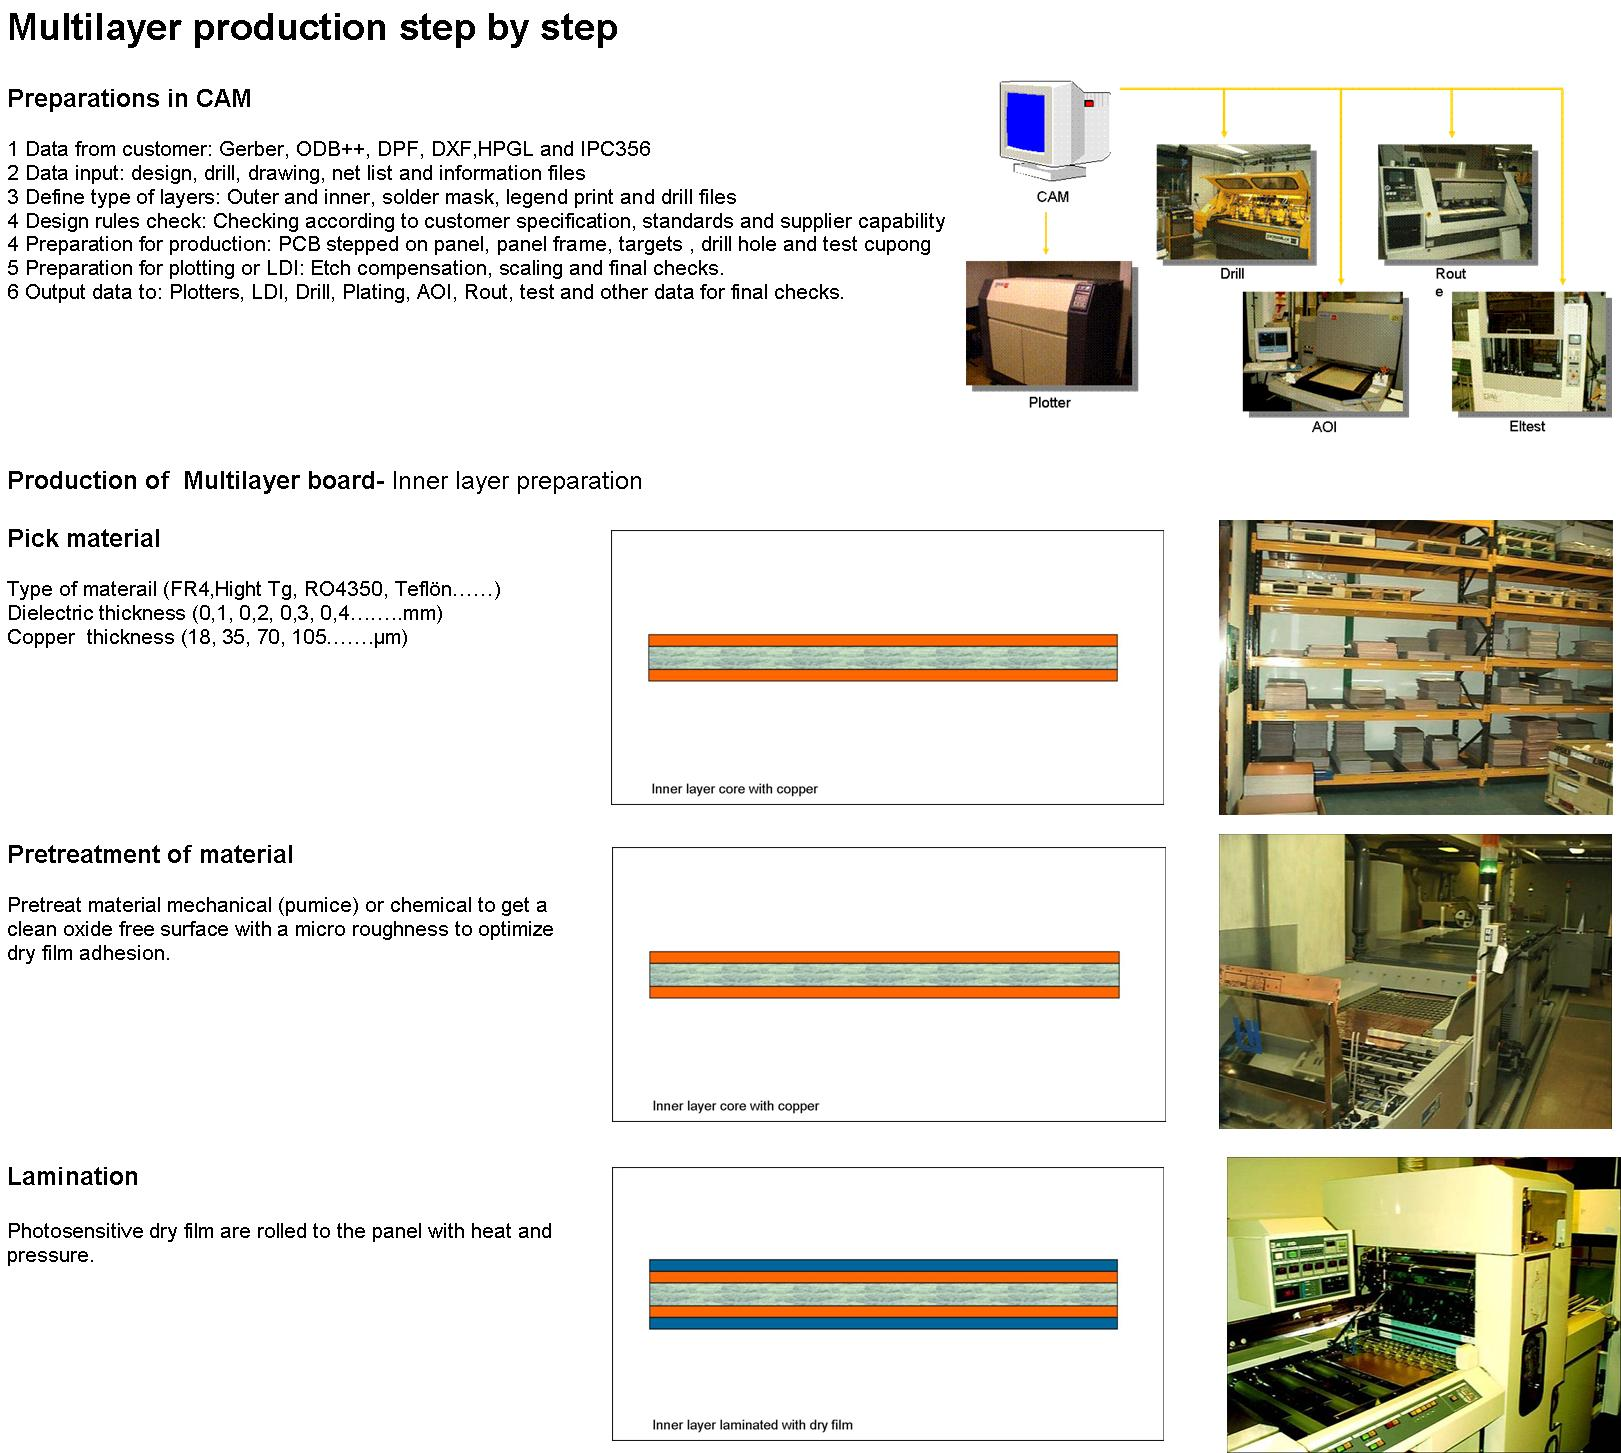 Multilayer production step by step